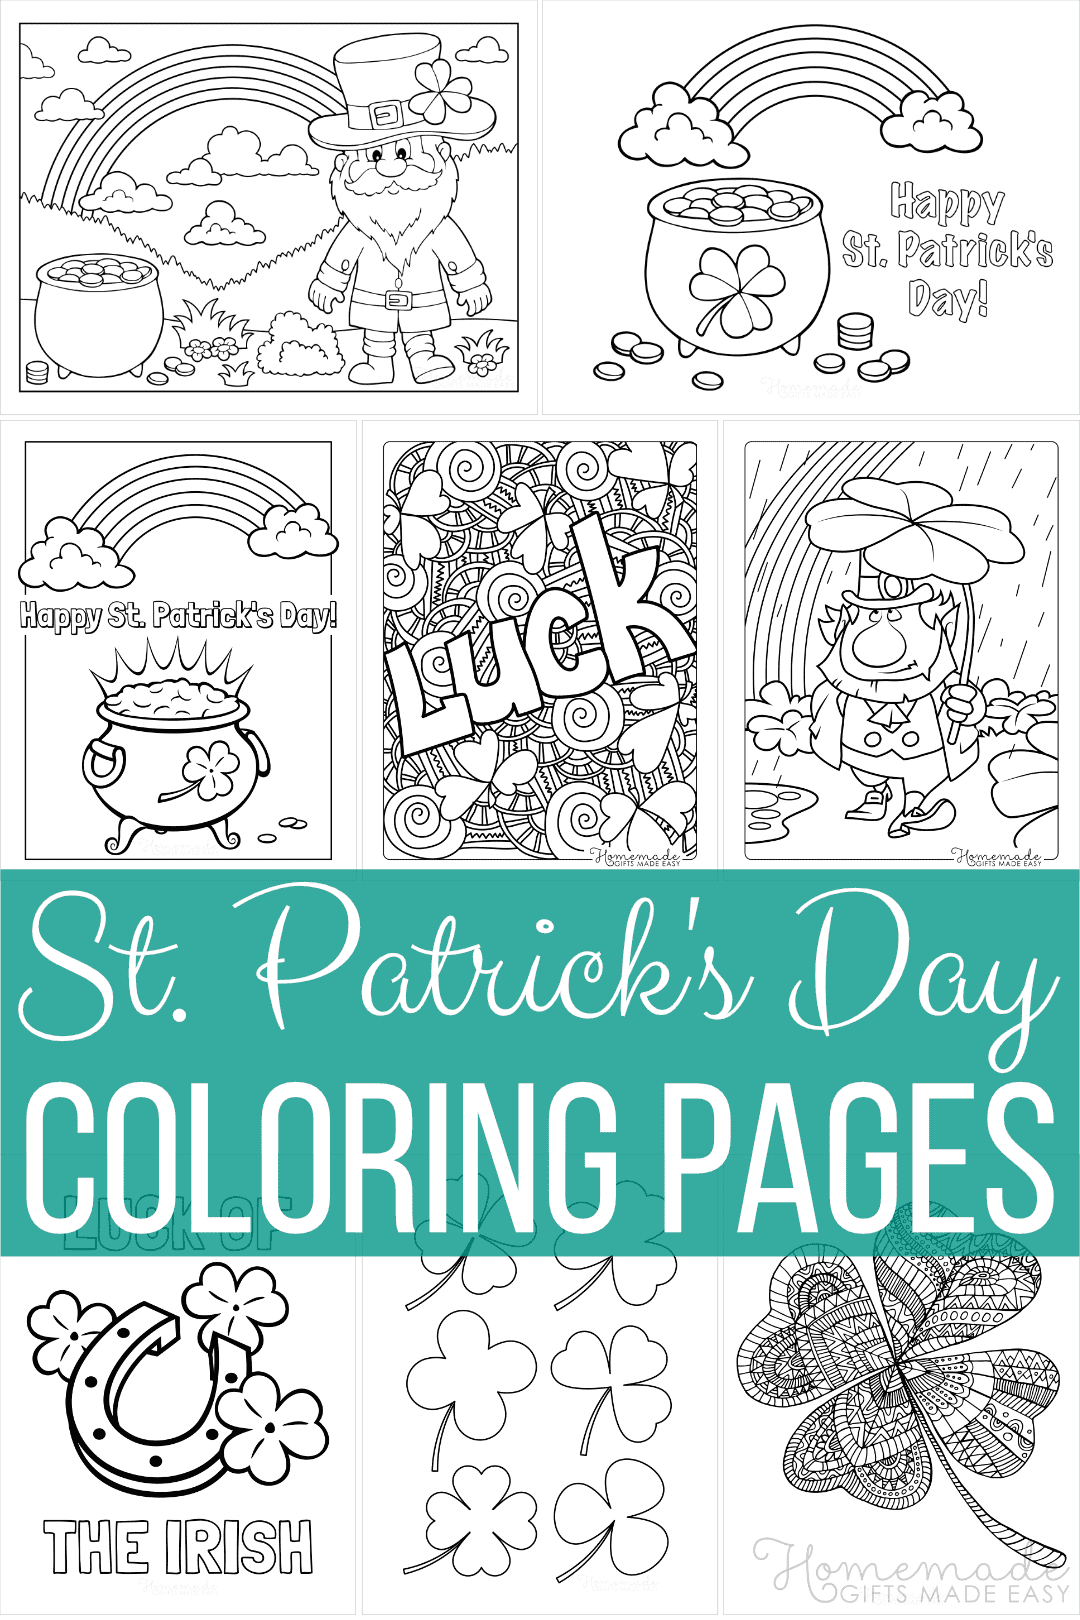 free st patrick's day coloring pages